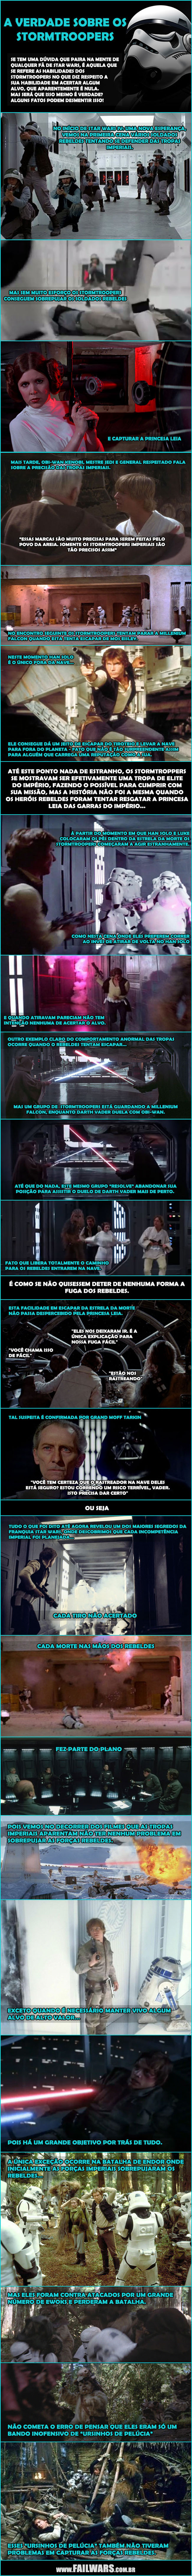 4-a-verdade-stormtroopers